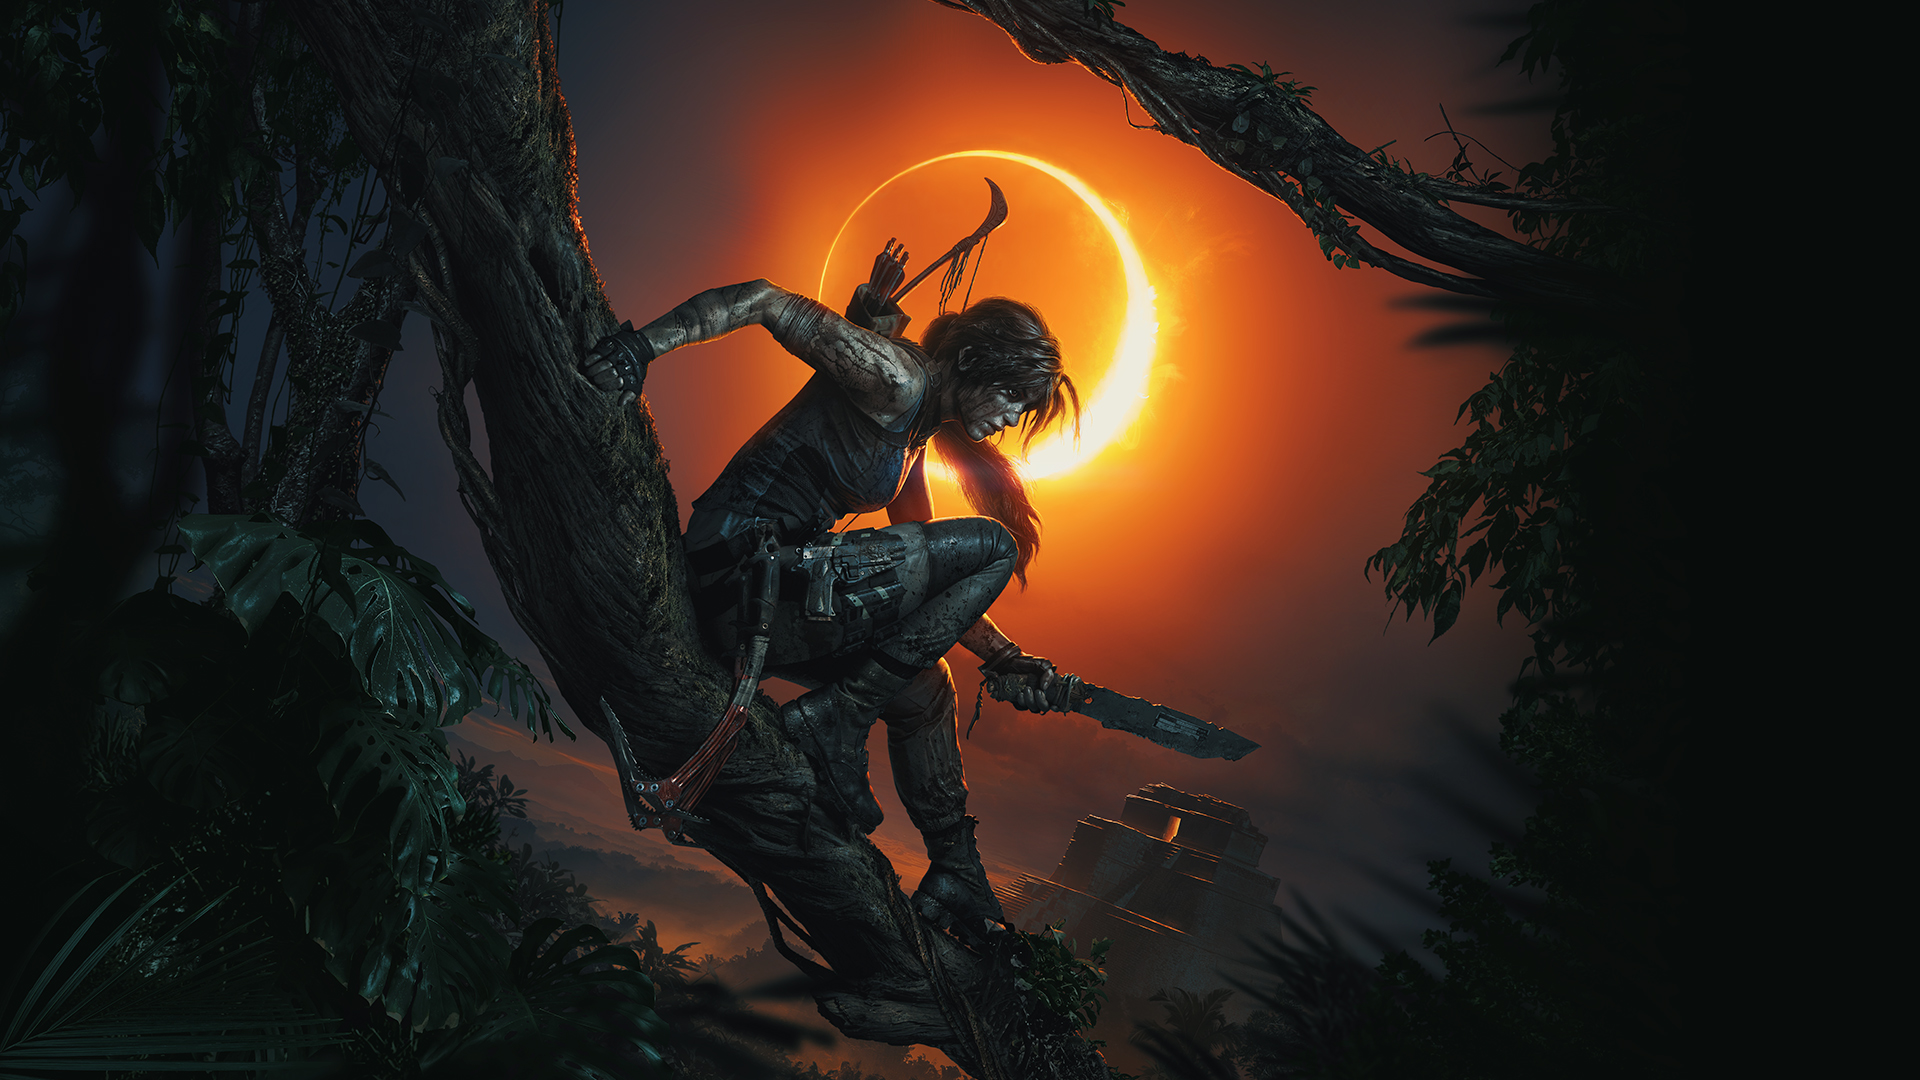 Tomb Raider 2018 Movie Synopsis Review Full Scenes Best Streaming